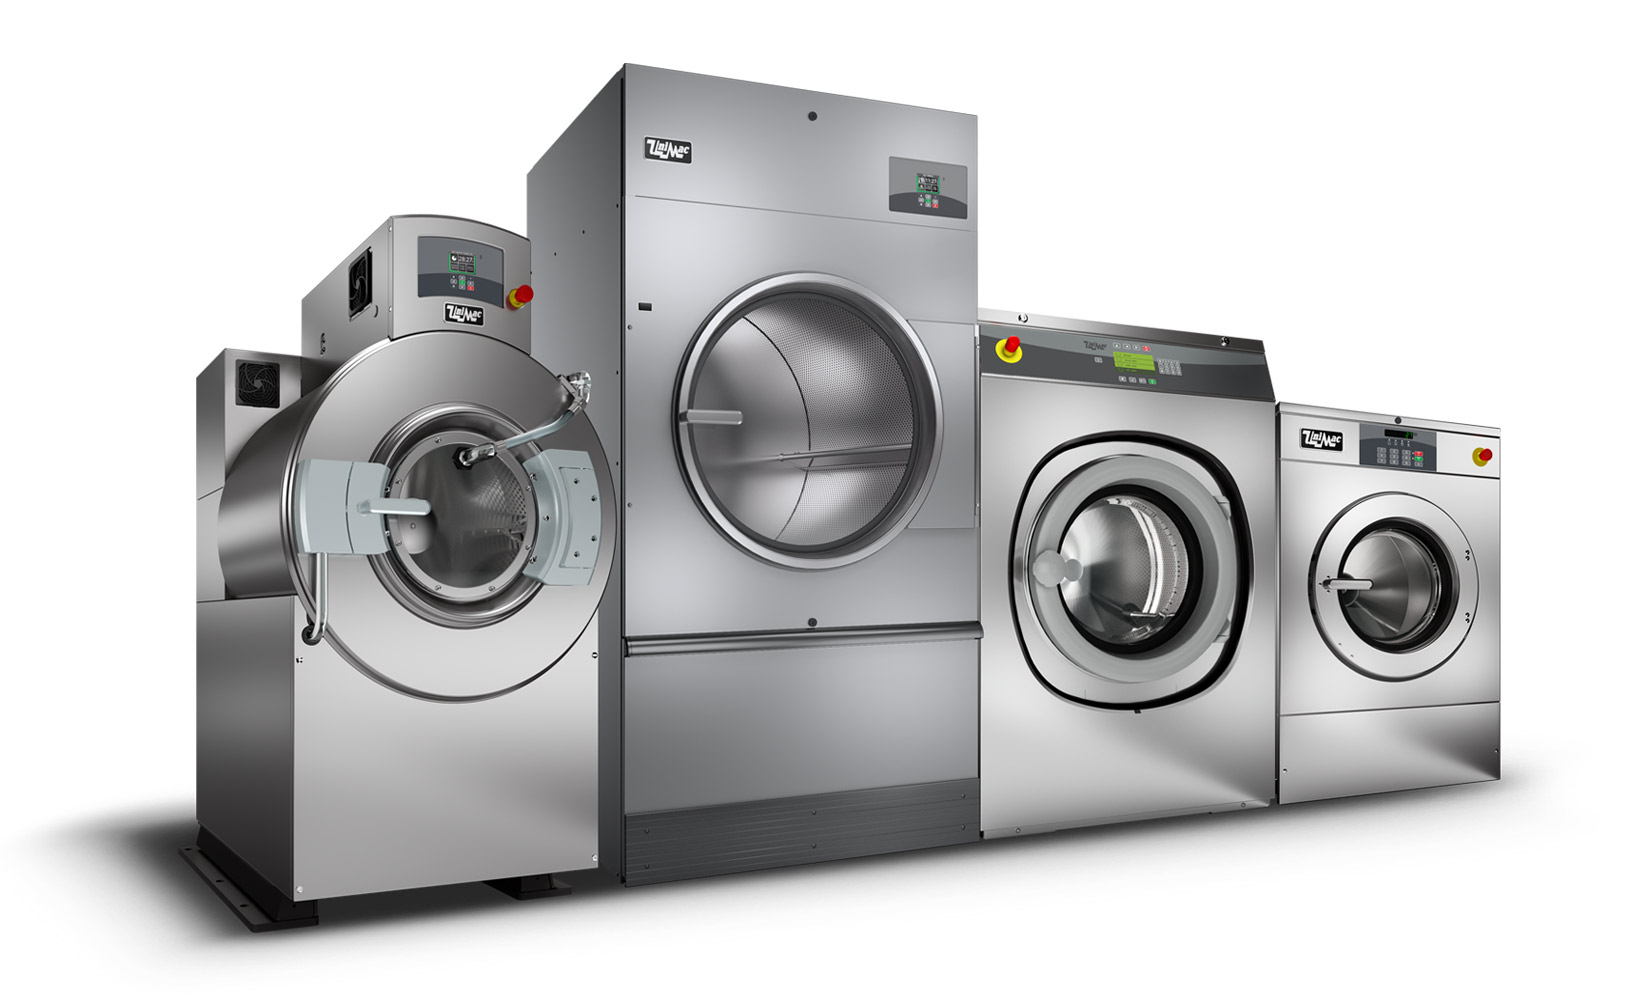 Commercial Washing Machines | Commercial Washers And Dryers | Used Commercial  Laundry Equipment - Consolidated Laundry Equipment Inc